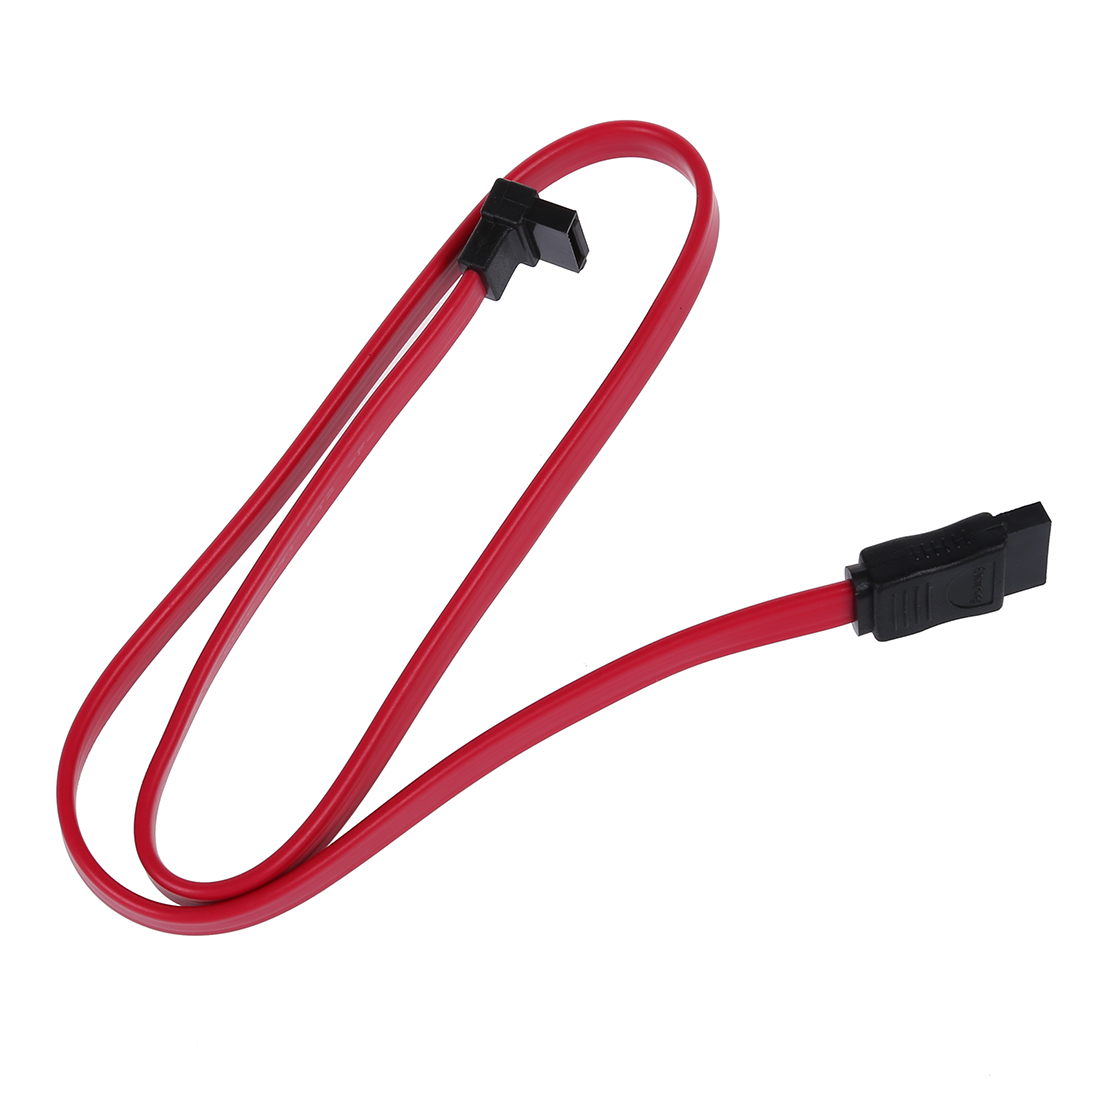 5x Red 19.7 Inch L-Shape Sata2 Male to Sata2 Male Cable For Sata / Sata2 Hard Disk Drive / CD-ROM / CDRW / DVD 1pcs 5 5 x 2 1mm jack male to 5 5mm x 2